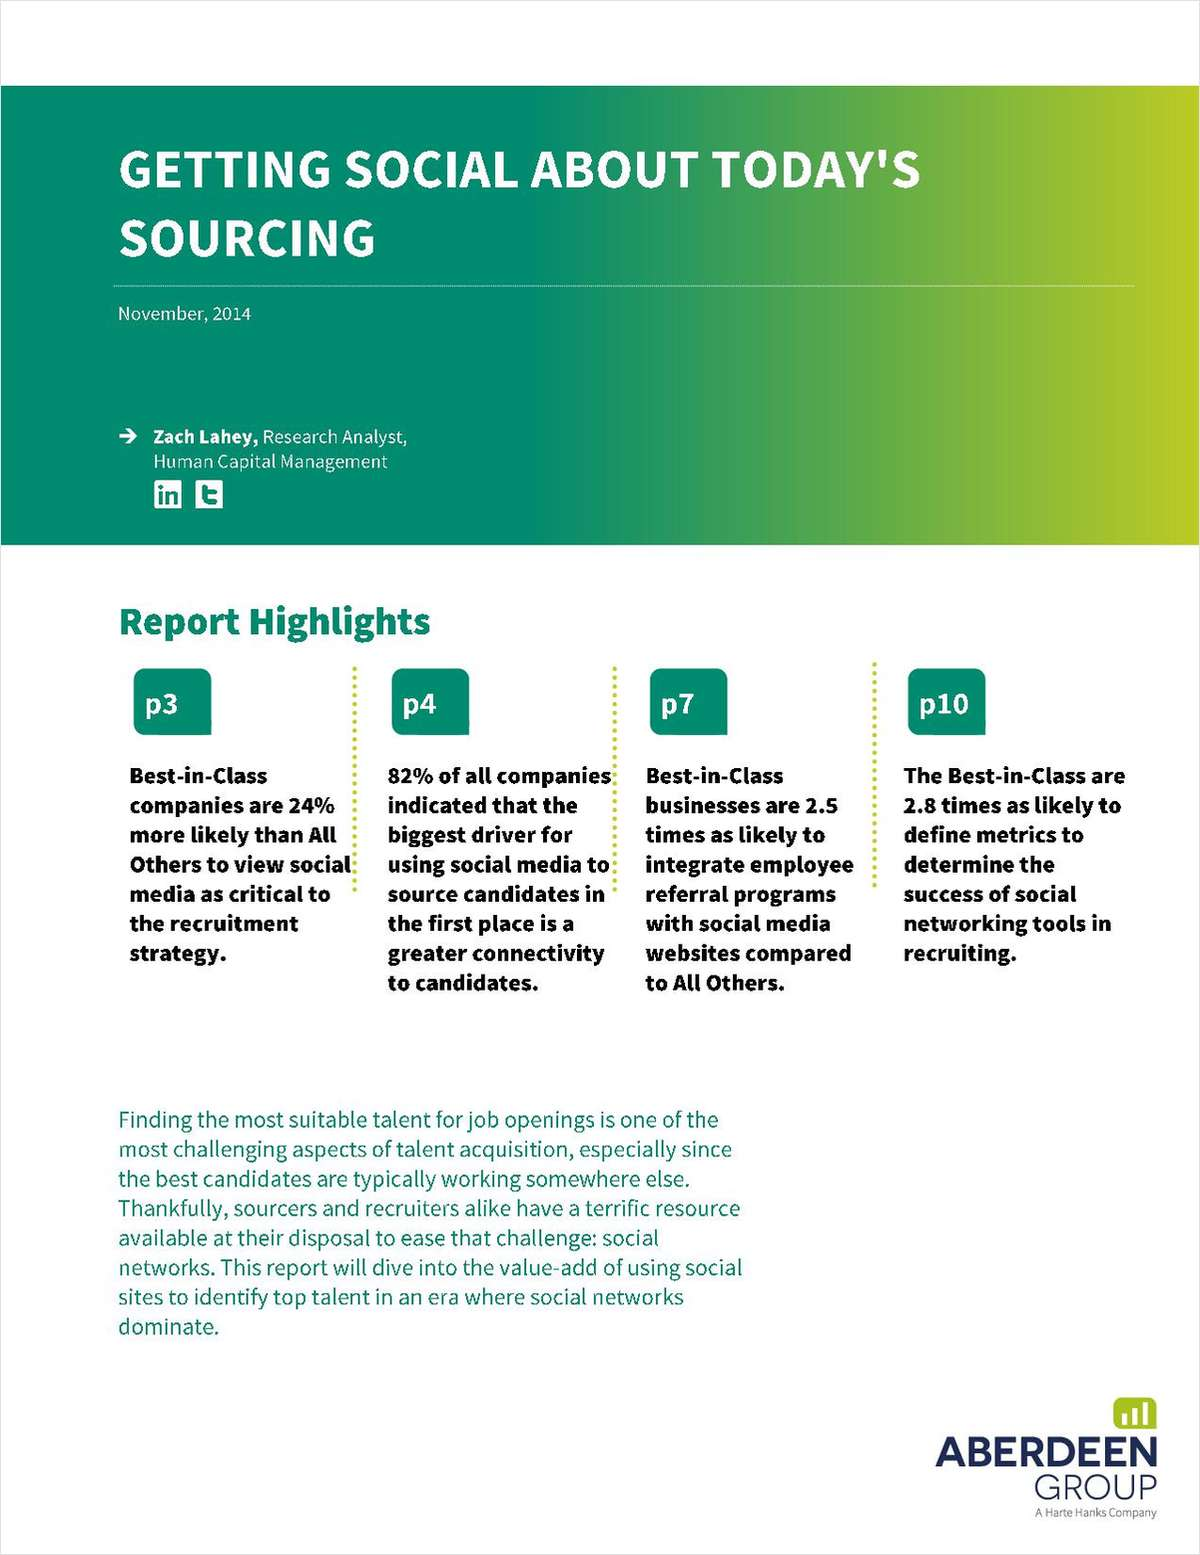 Aberdeen Report: Getting Social About Today's Sourcing